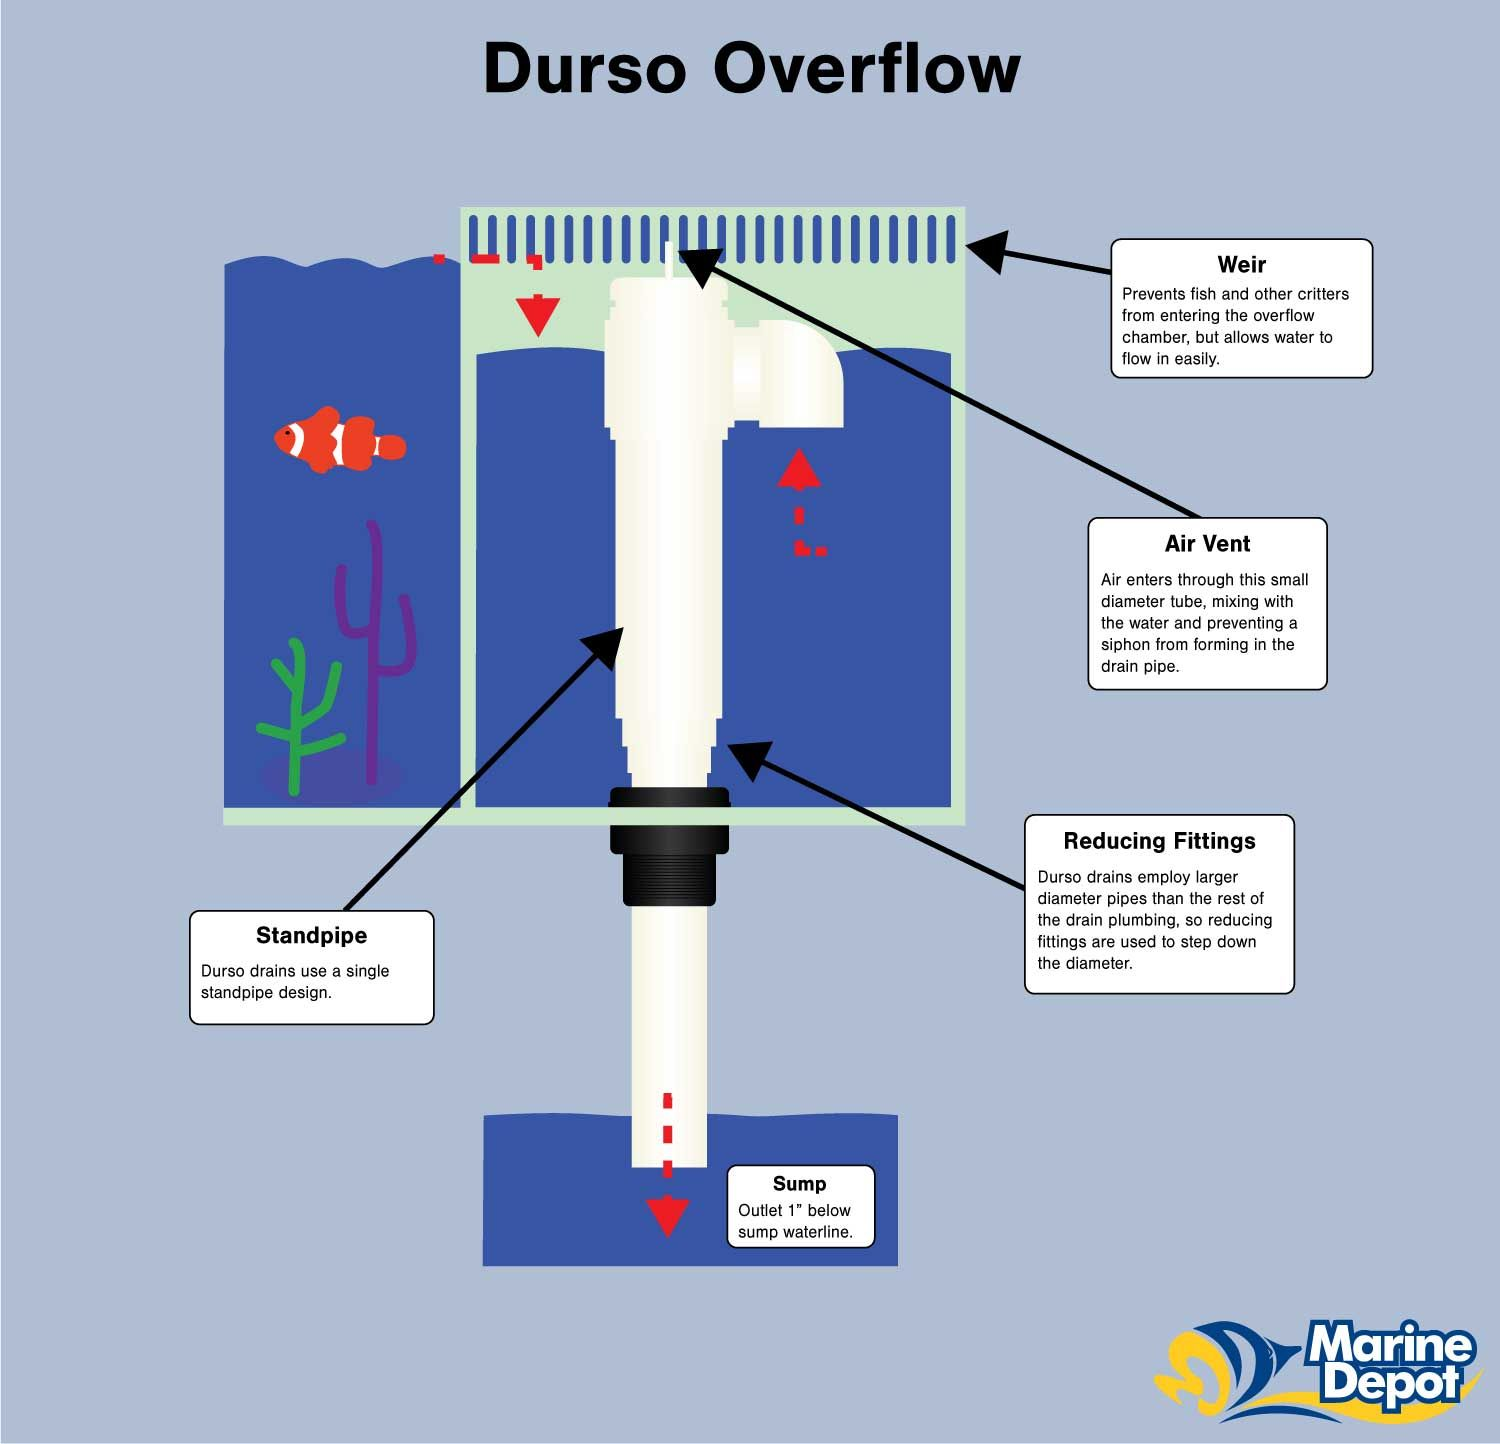 Durso Overflow Noisy drains can be problematic when it